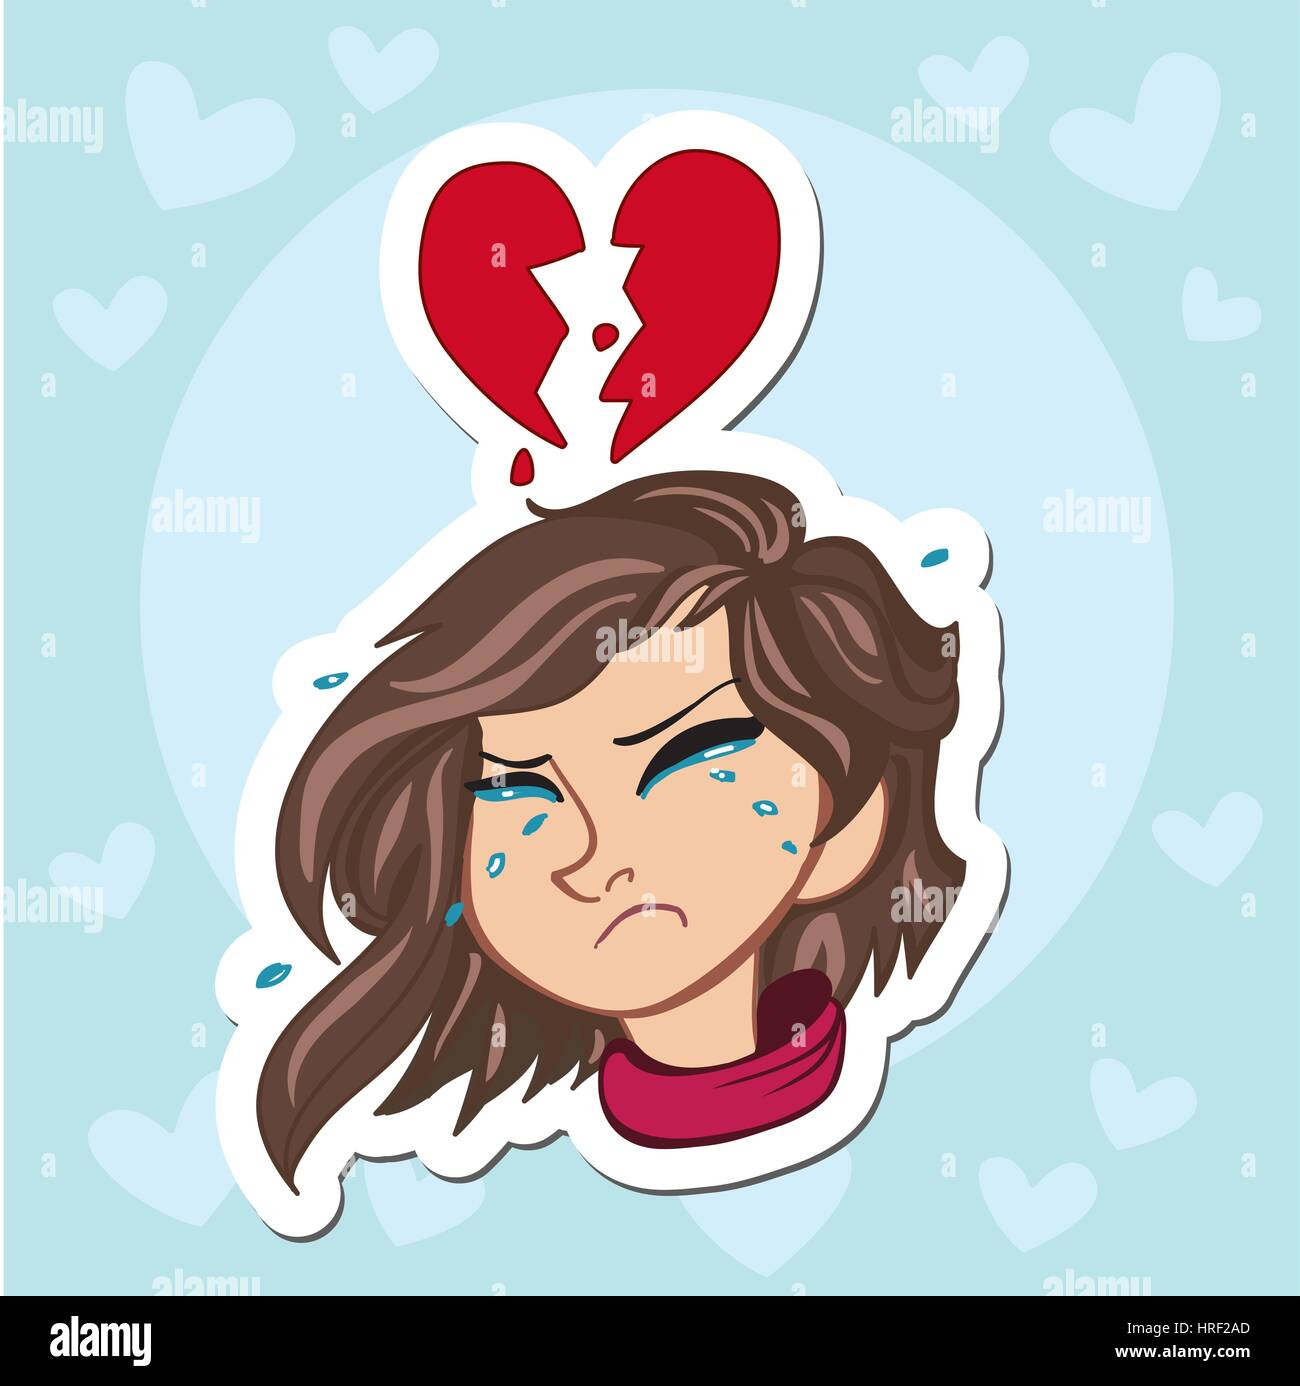 Lonely and sad little girl crying with ponytails and pink sweater - Stock Vector